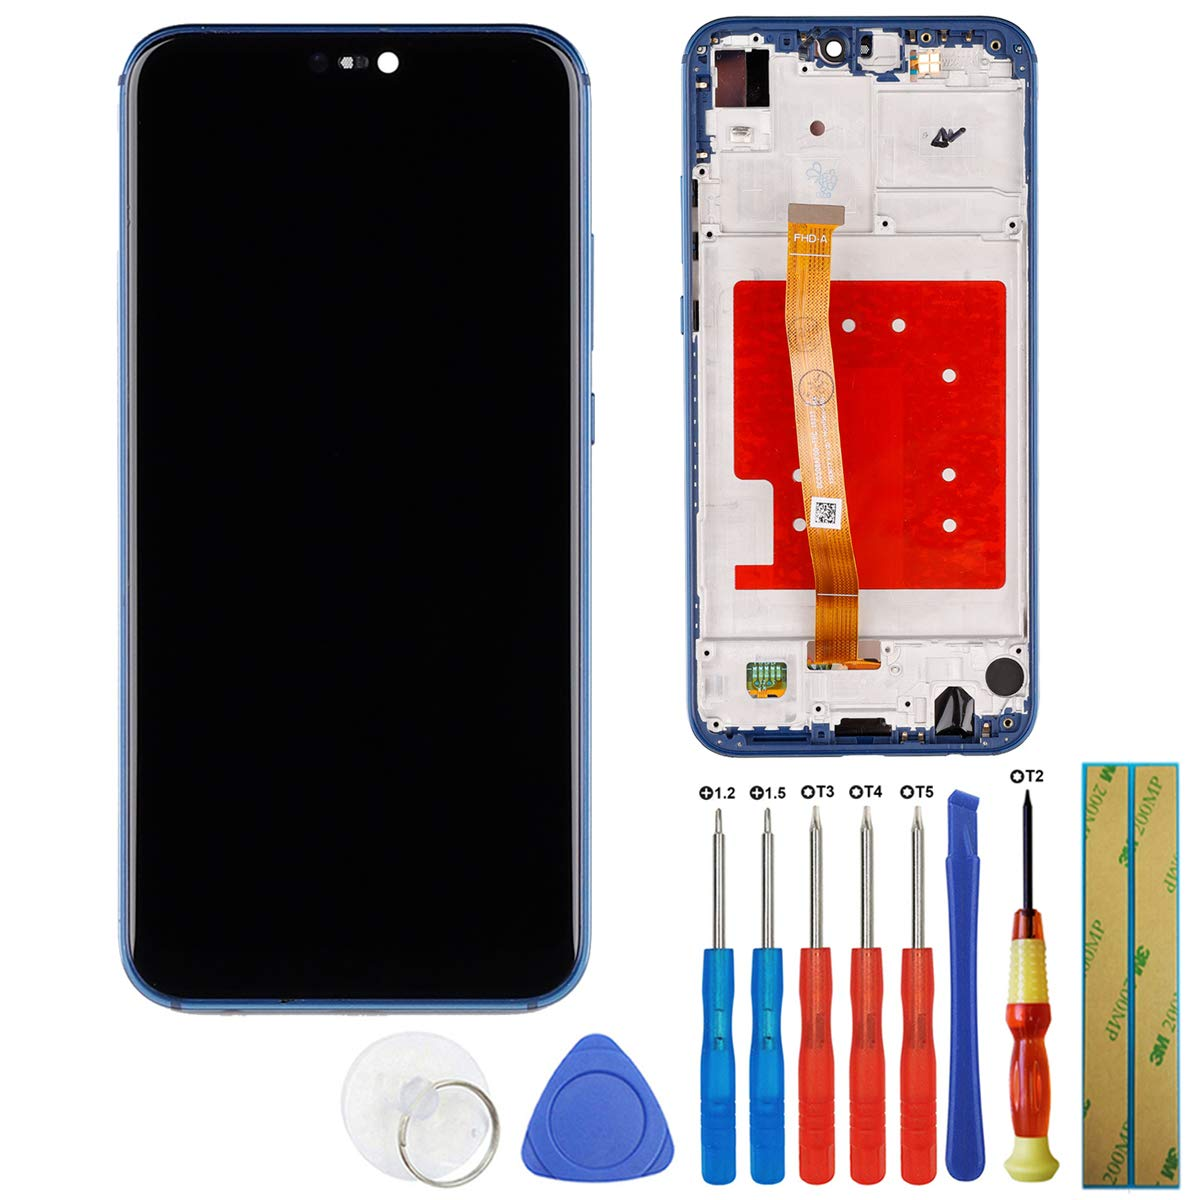 E-yiiviil Replacement LCD Display Touch Screen Digitizer Assembly Full for Huawei P20 Lite/Nova 3e ANE-LX2 ANE-L22 ANE-LX1 ANE-L21 ANE-AL00 5.84''(Frame+Blue) + Tools by E-YIIVIIL